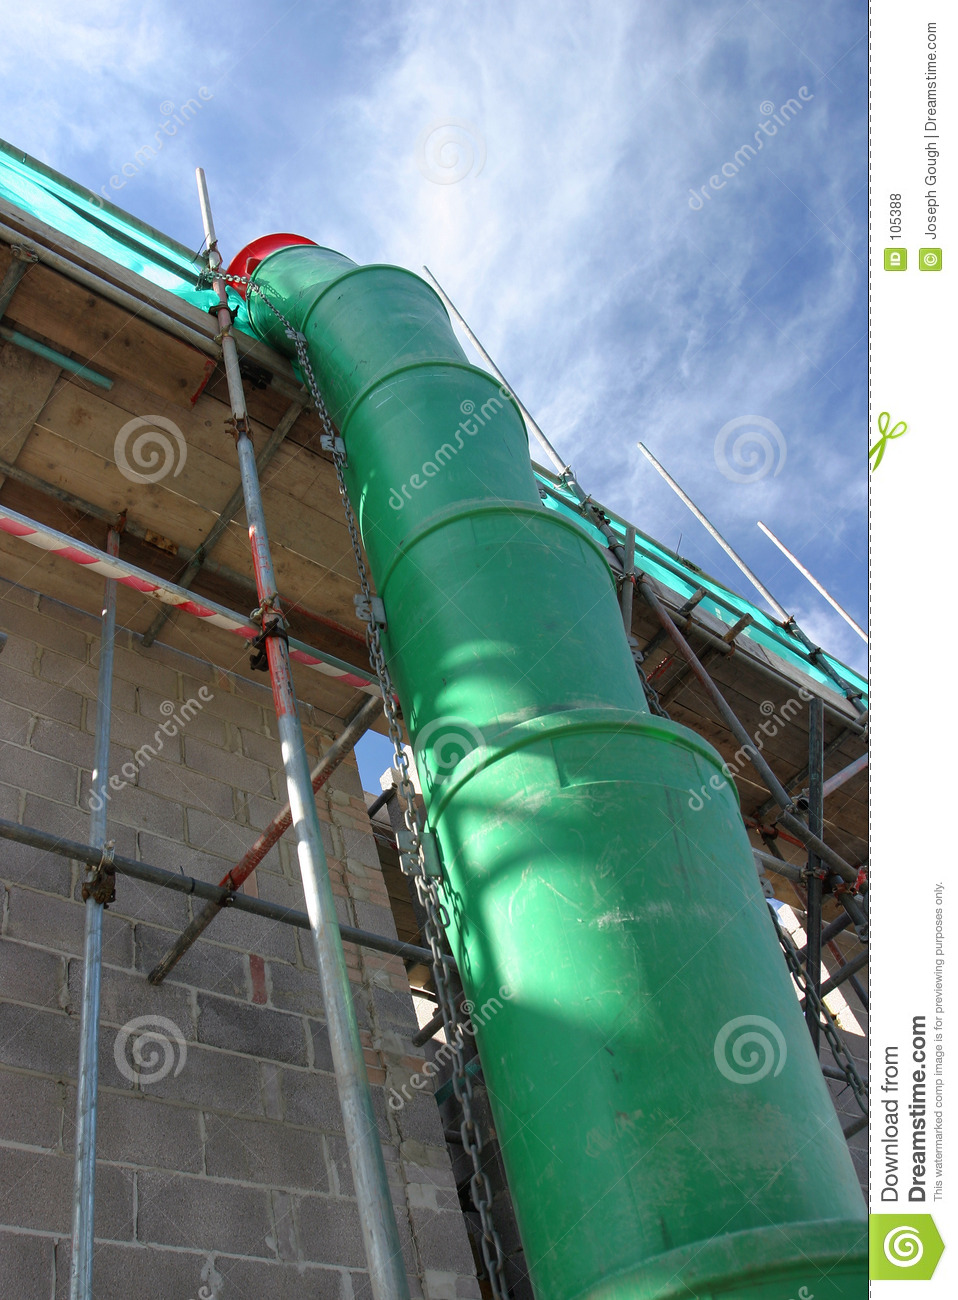 Trash Chute Rubbish : Construction waste chute stock photo image of garbage